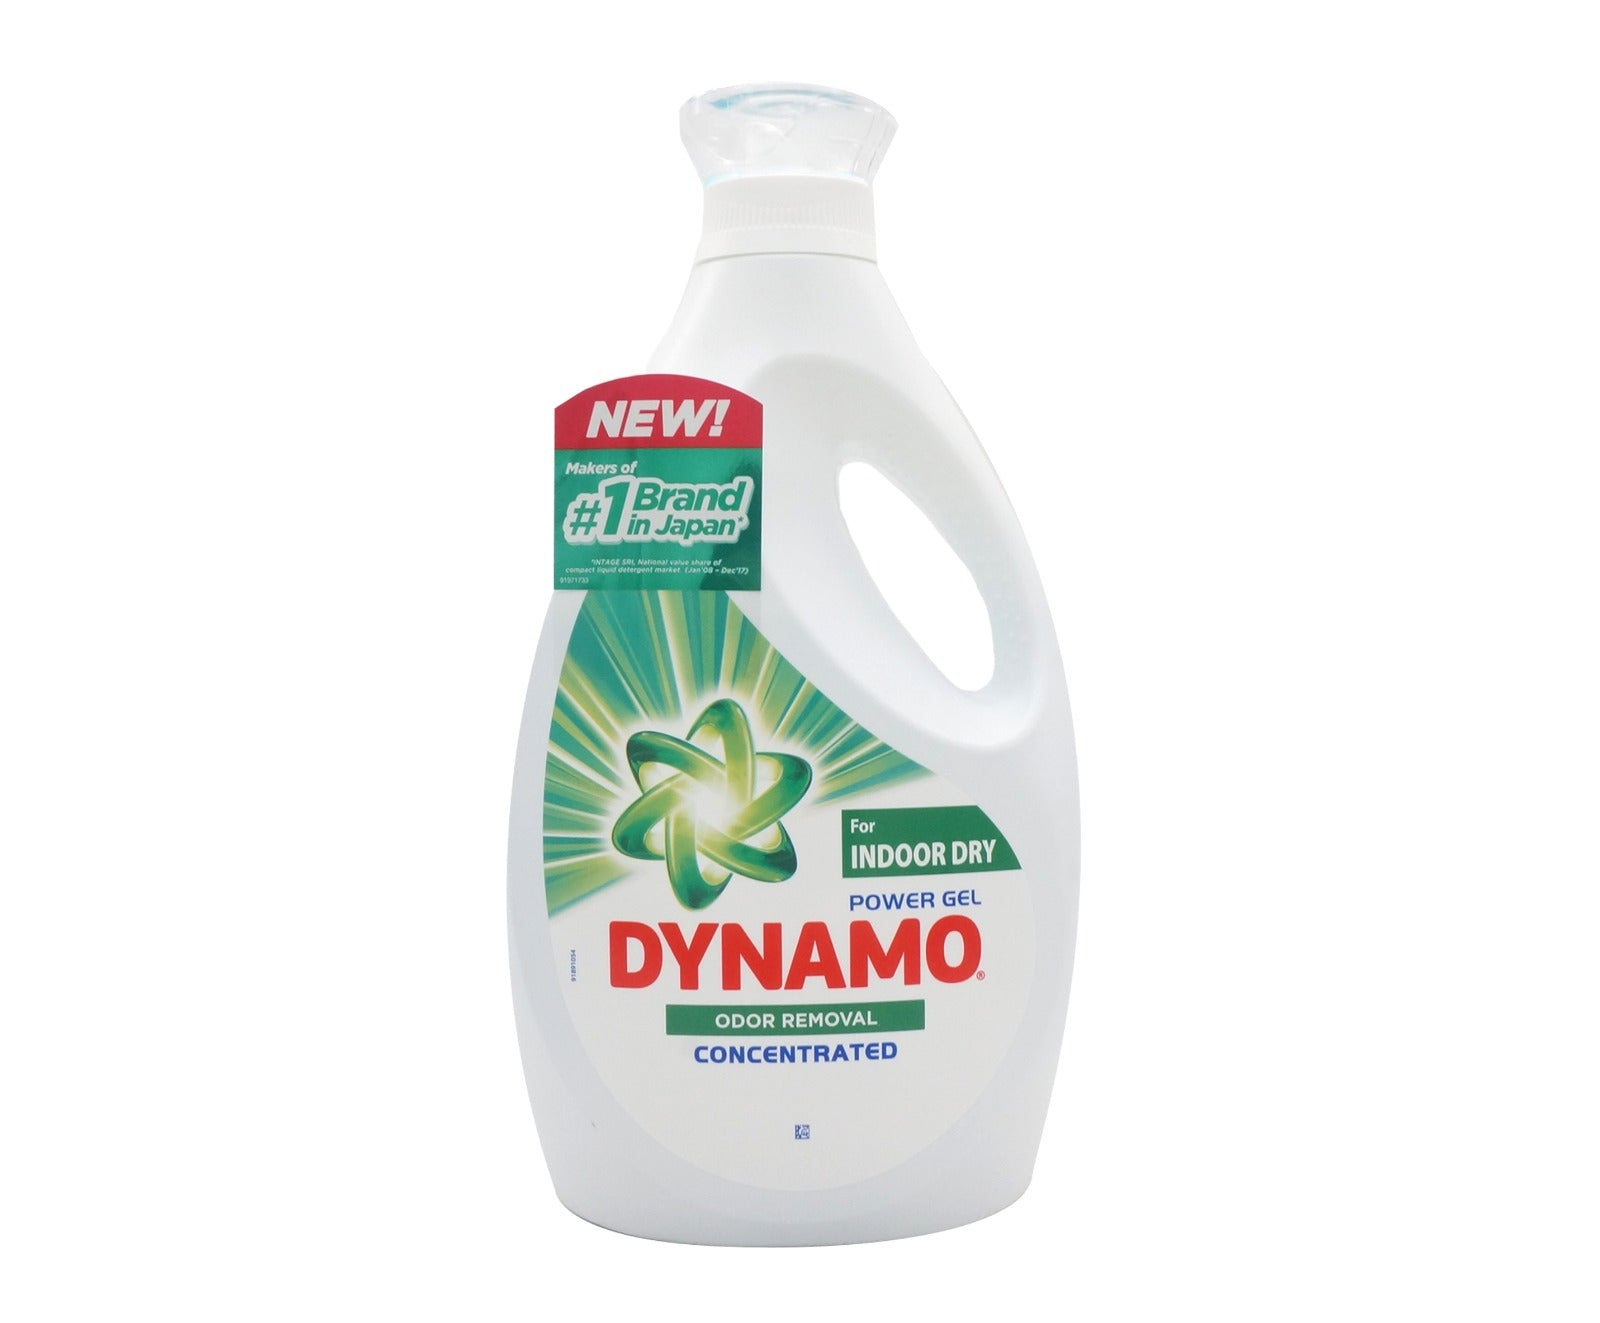 Dynamo Power Gel Detergent - Indoor Dry (2.7Kg – Piece)